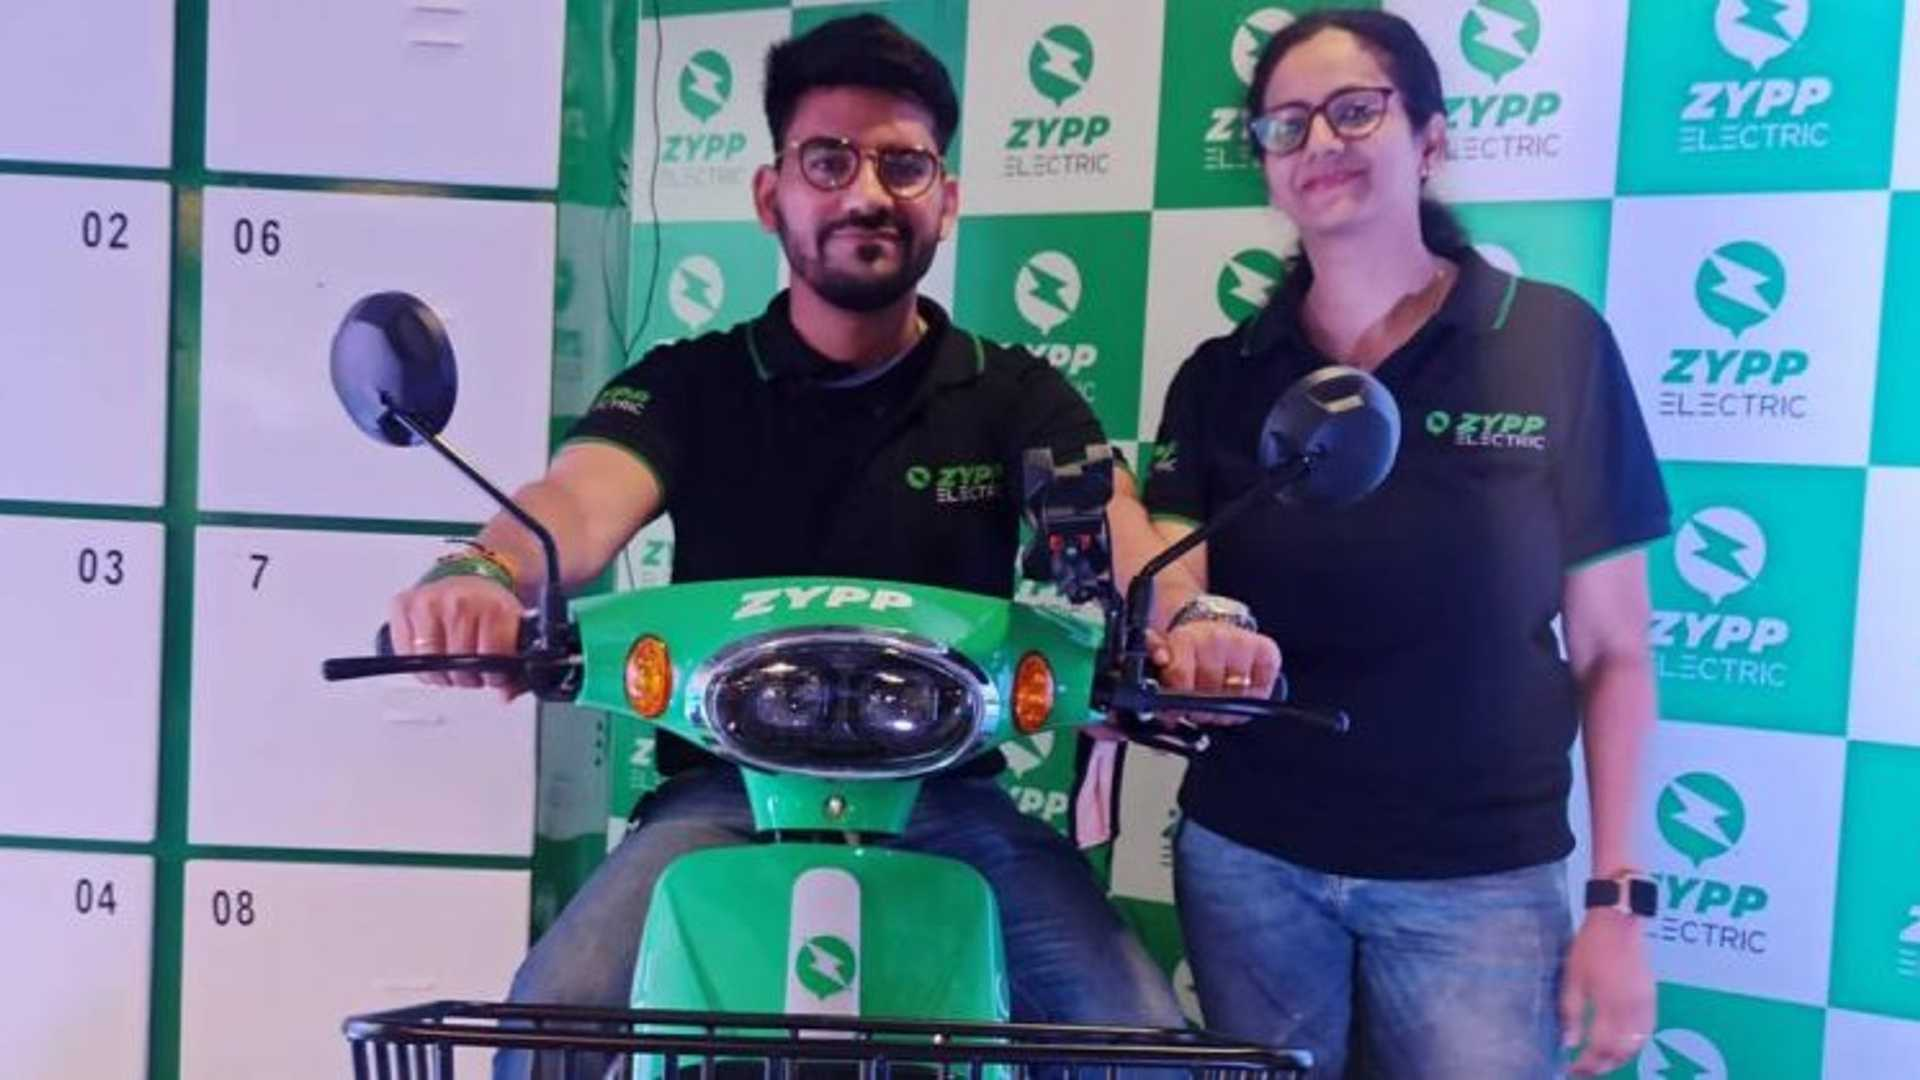 Imptag:Zypp electric scooter,Zypp electric scooter,zypp electric scooter price,zypp electric scooter,zypp electric scooter price in delhi,zypp e scooter price in india,zypp e scooter,2021 Zypp electric scooter,2022 Zypp electric scooter,2021 zypp electric scooter price,zypp electric scooter 2021,zypp scooter price in delhi,zypp,zypp scooter